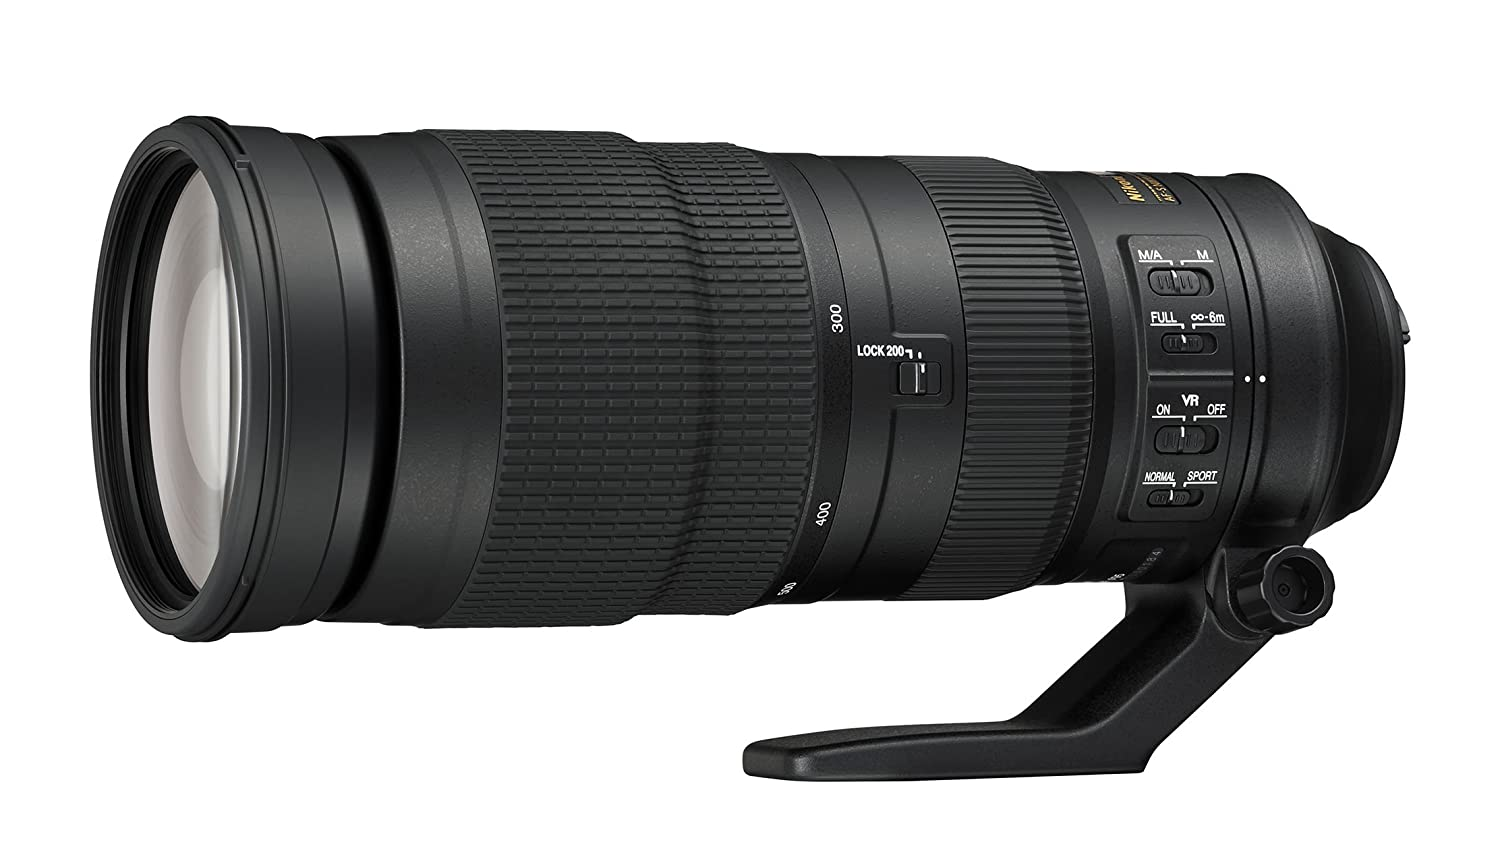 Nikon AF-S FX NIKKOR 200-500mm f/5.6E ED Vibration Reduction Zoom Lens